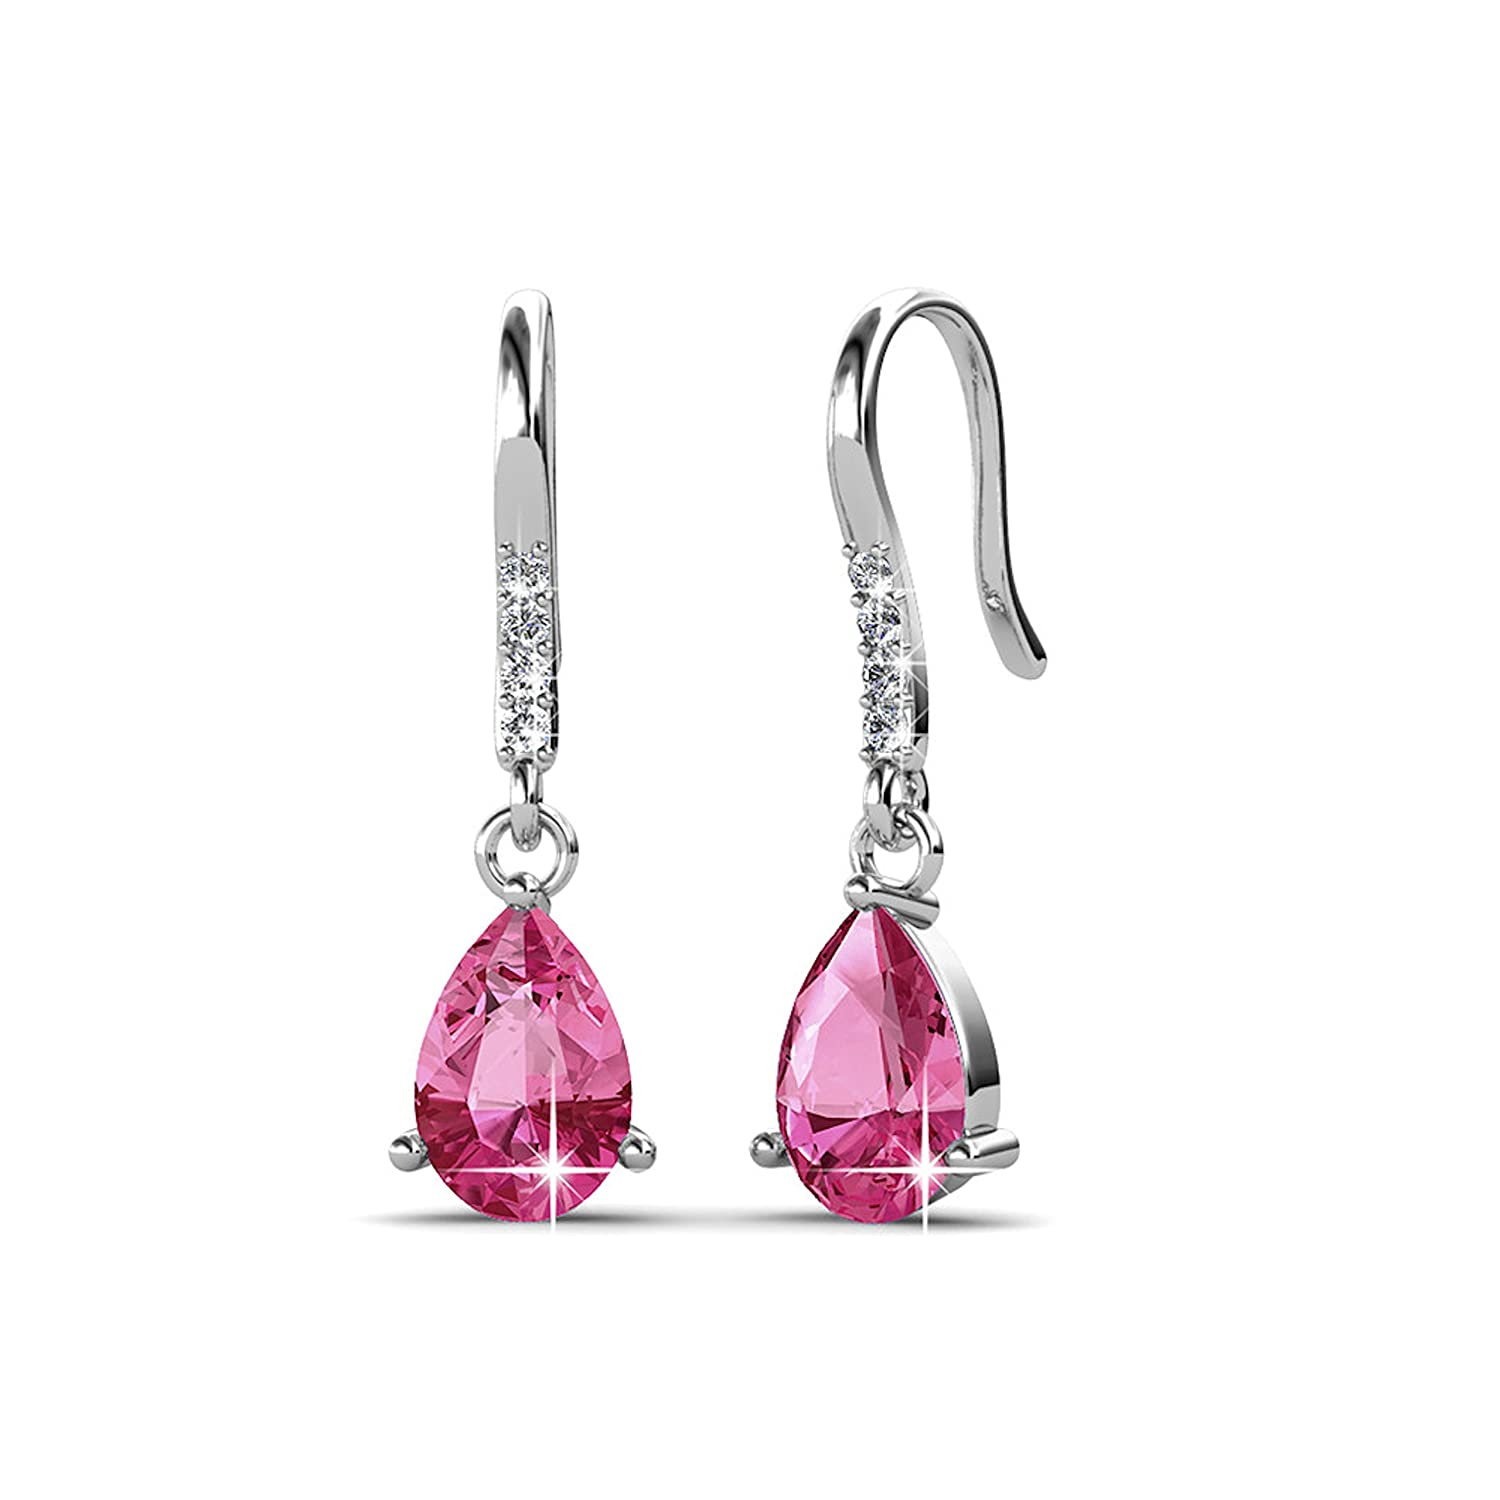 e9d57b50d Private Twinkle 18ct White Gold Plated Hook Earrings made with Crystal  (6mm, 3 Claw) (Pink): Amazon.co.uk: Jewellery